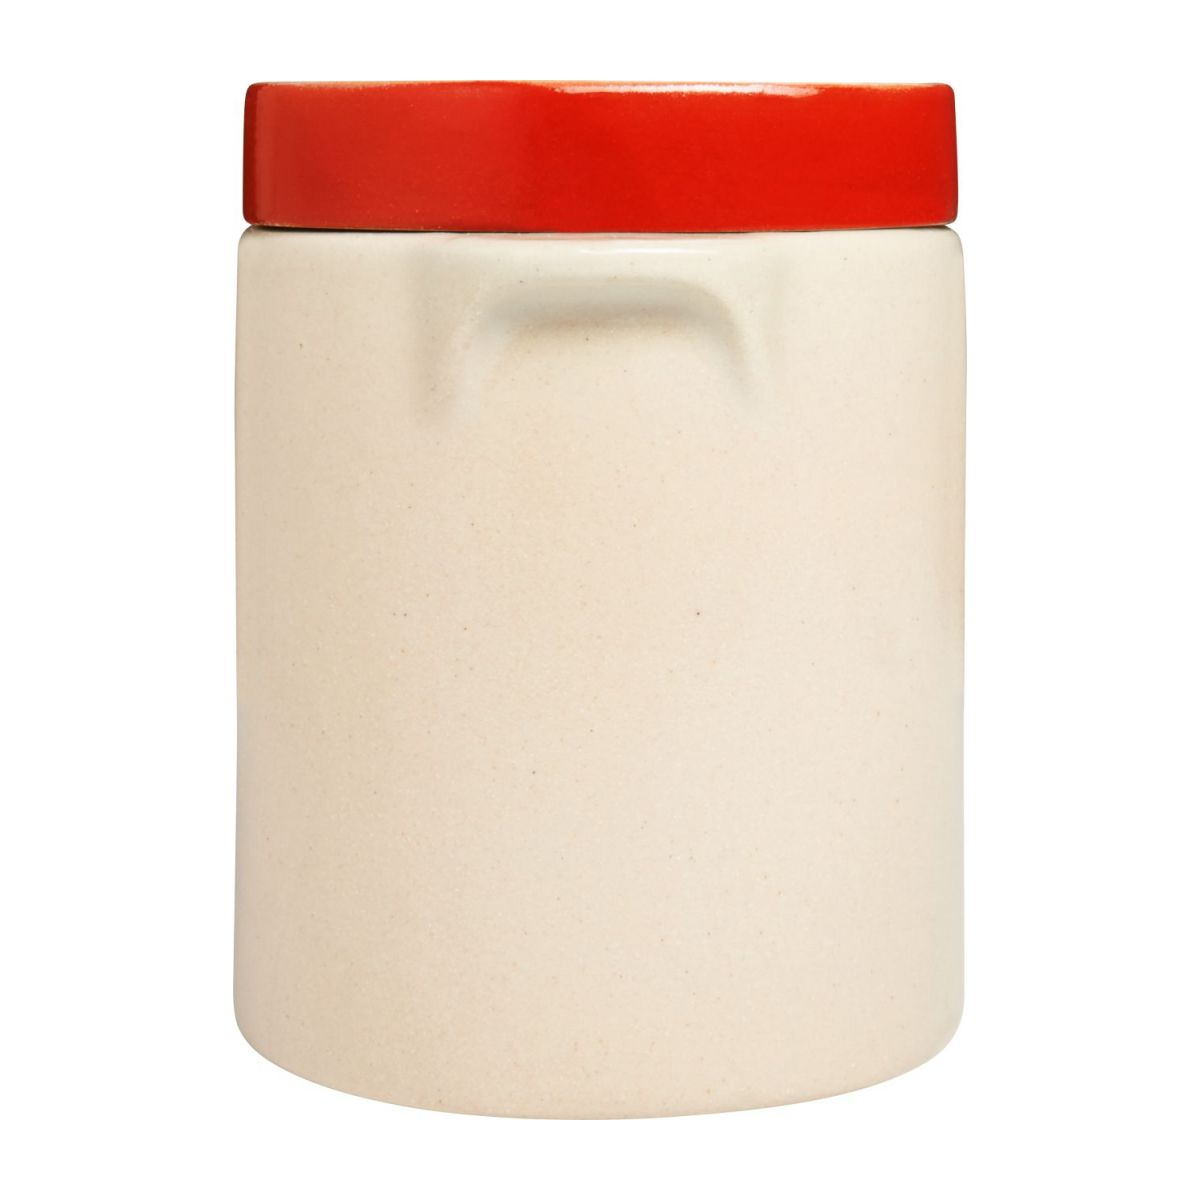 Box made in sandstone - 0,5L, natural and red n°5